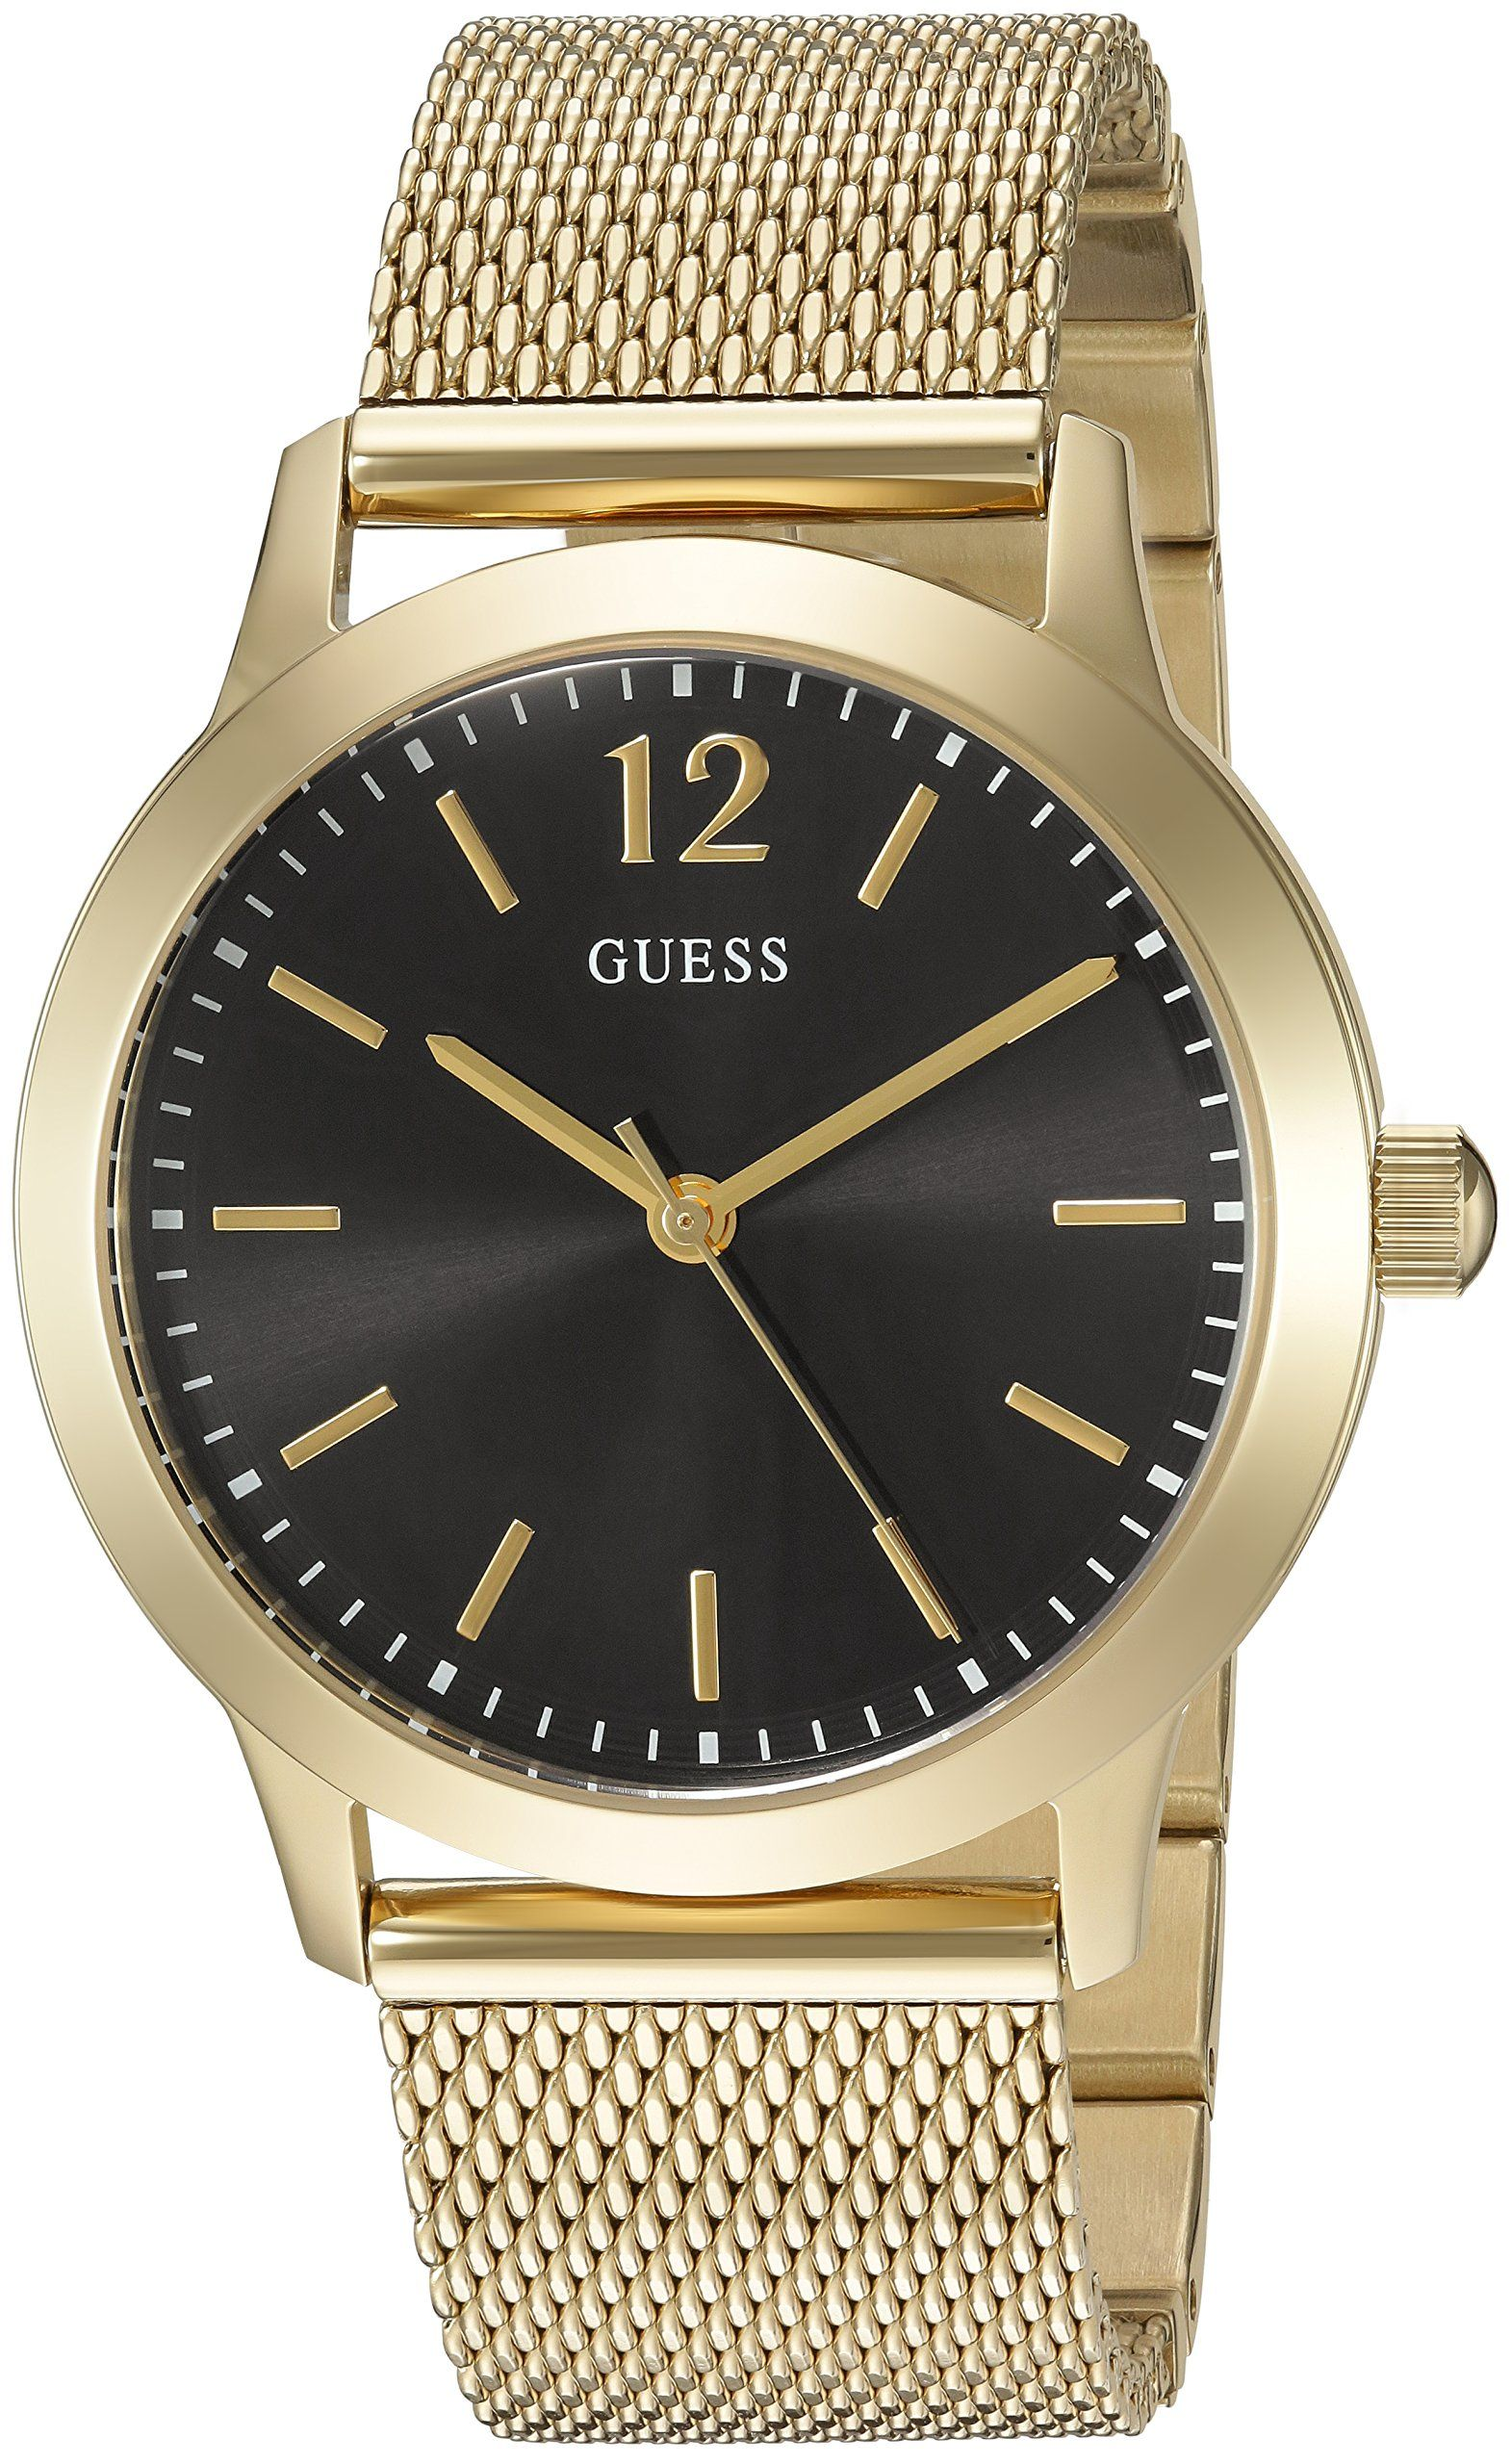 GUESS Men's U0921G3 Dressy Gold-Tone Watch with Black Dial and Mesh Band. Features an elegant minimalistic dial and Gold-tone mesh bracelet. Define your time with this modern Diamond dial. Quartz Movement. Case Diameter: 37.5mm. Water resistant to 50m (165ft: in general, suitable for short periods of recreational swimming, but not diving or snorkeling.